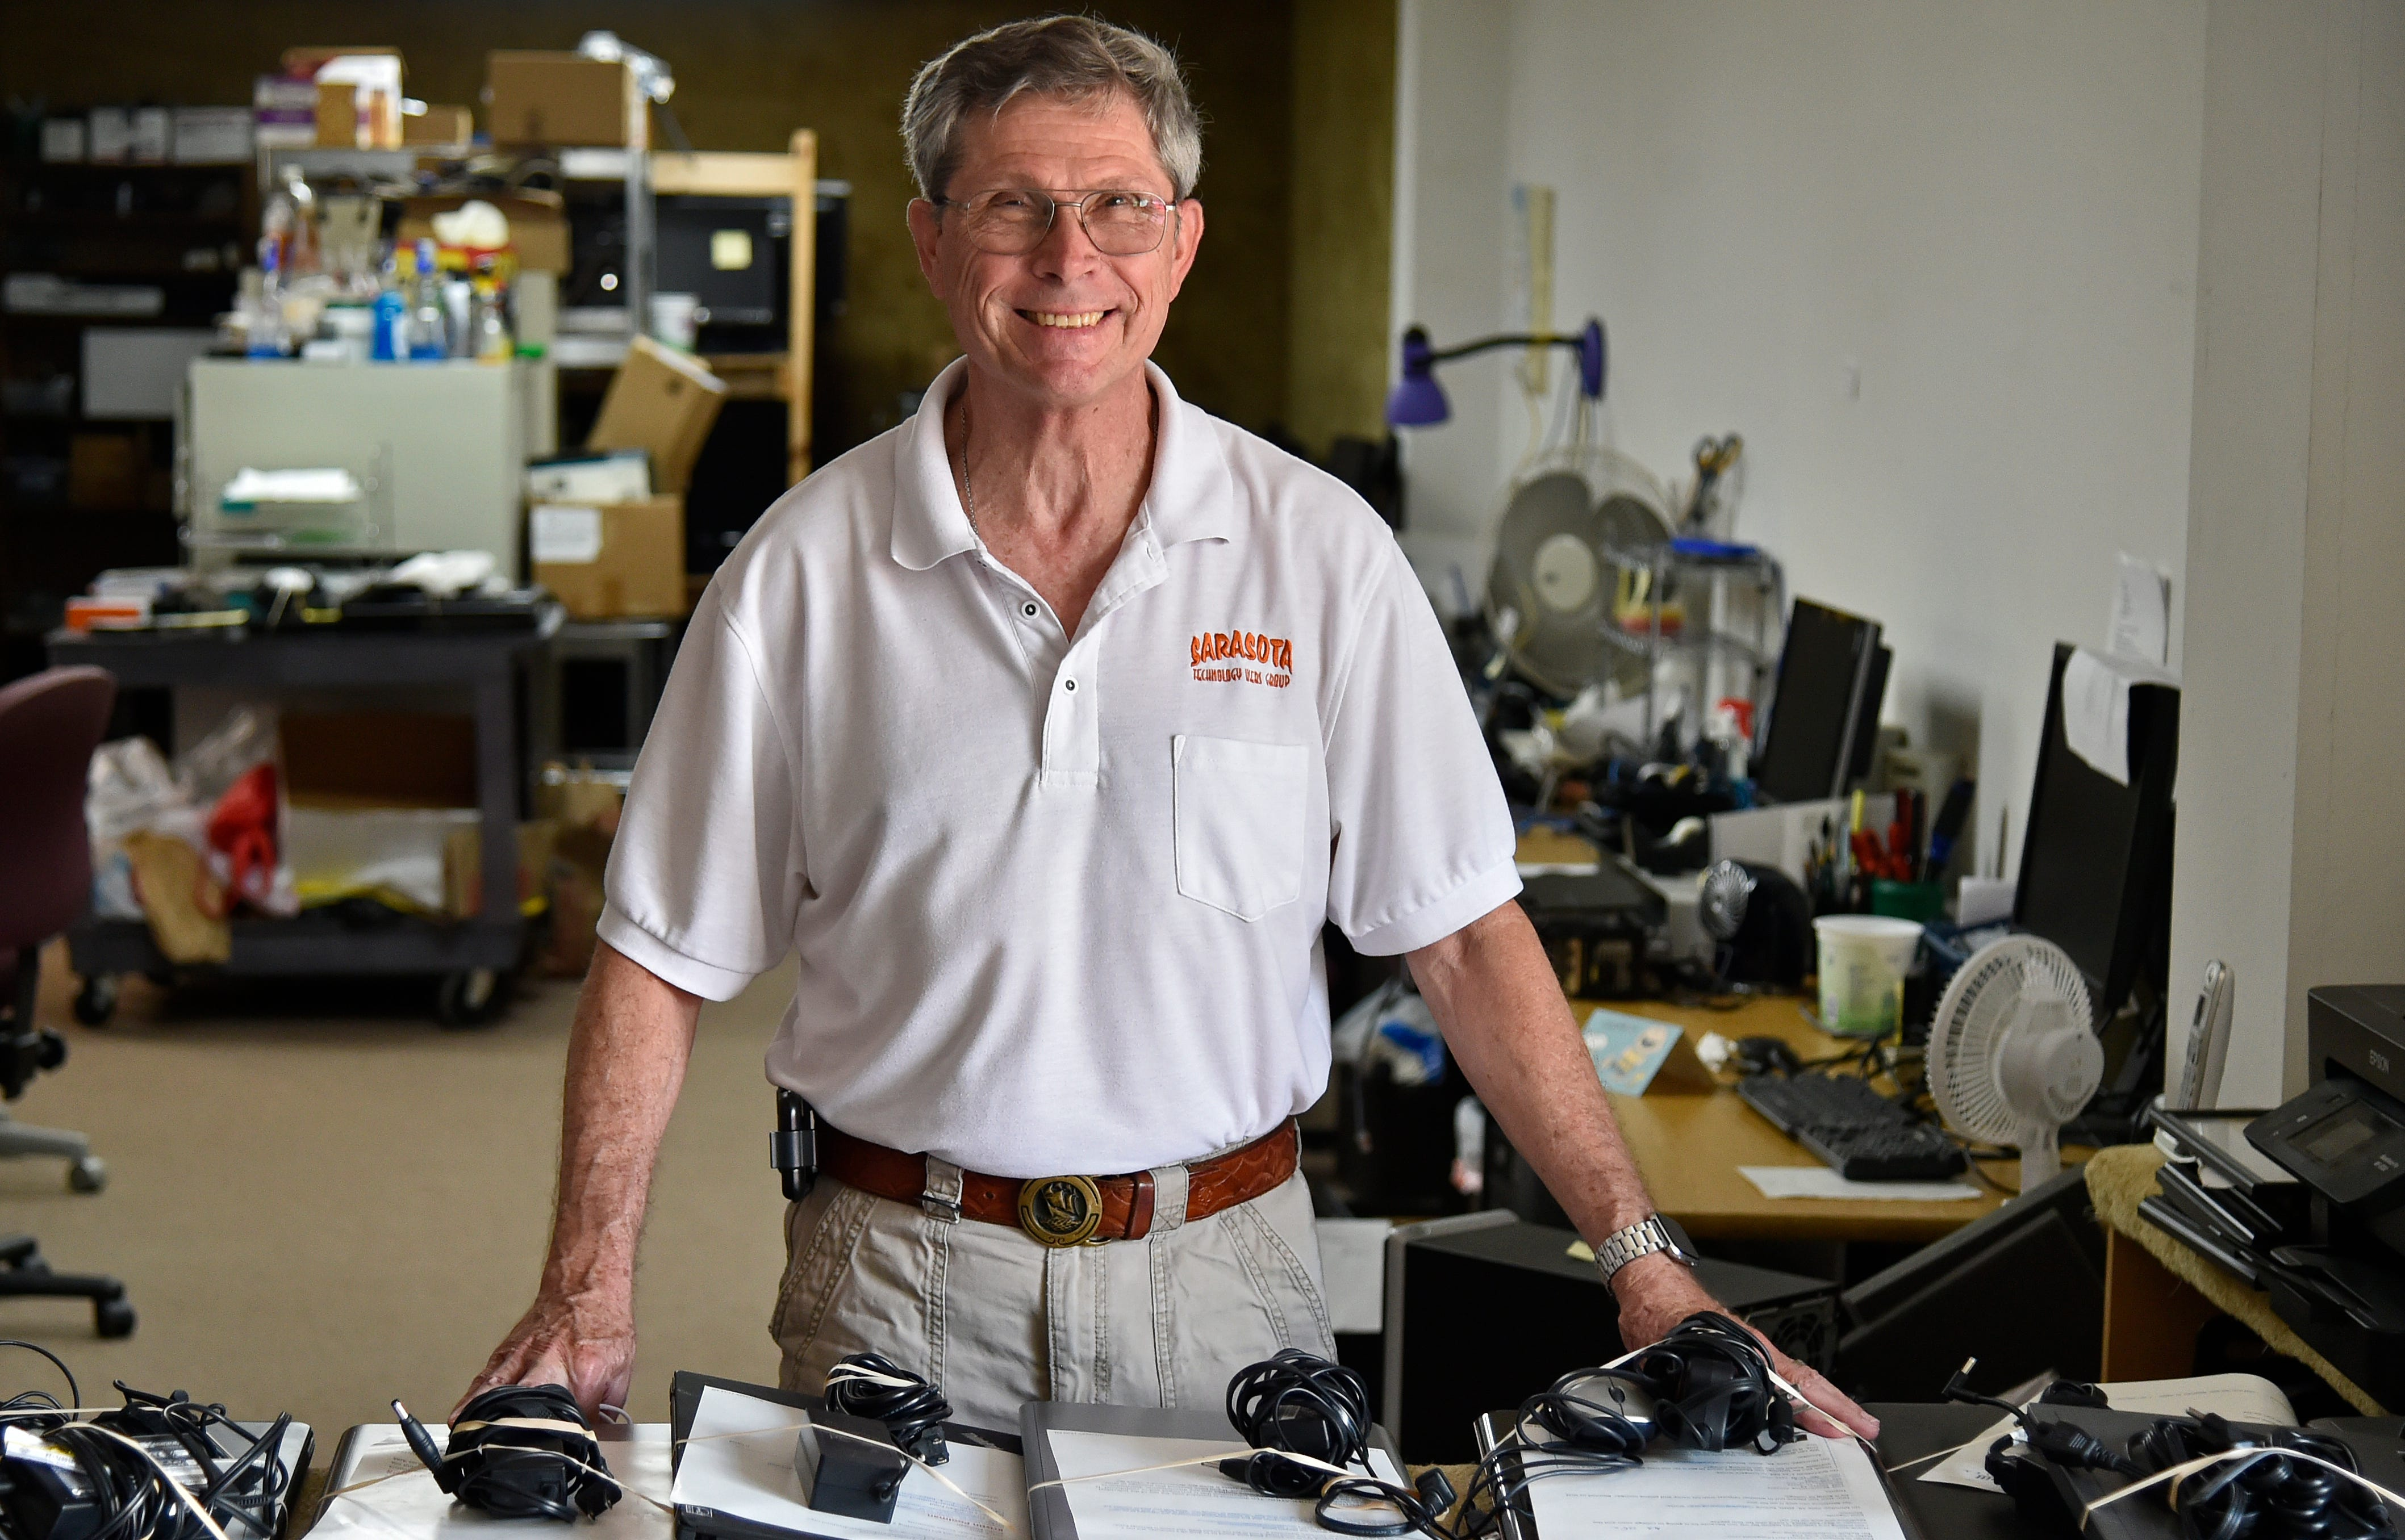 Mike Hutchinson of the Suncoast Technology Users Group, which refurbishes and donates more than 1,000 computers back into the community every year.